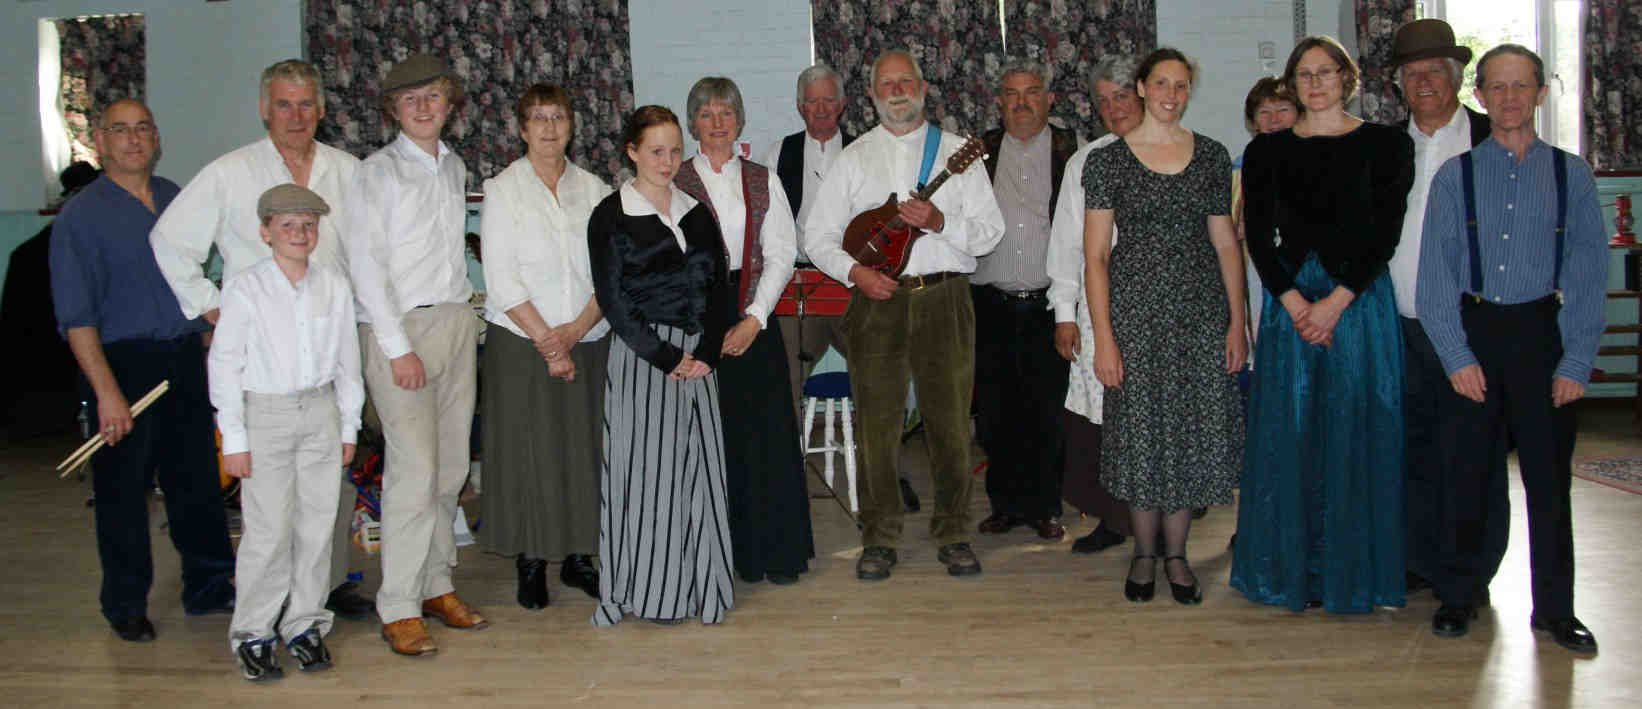 Cast of Candleford, June 2009